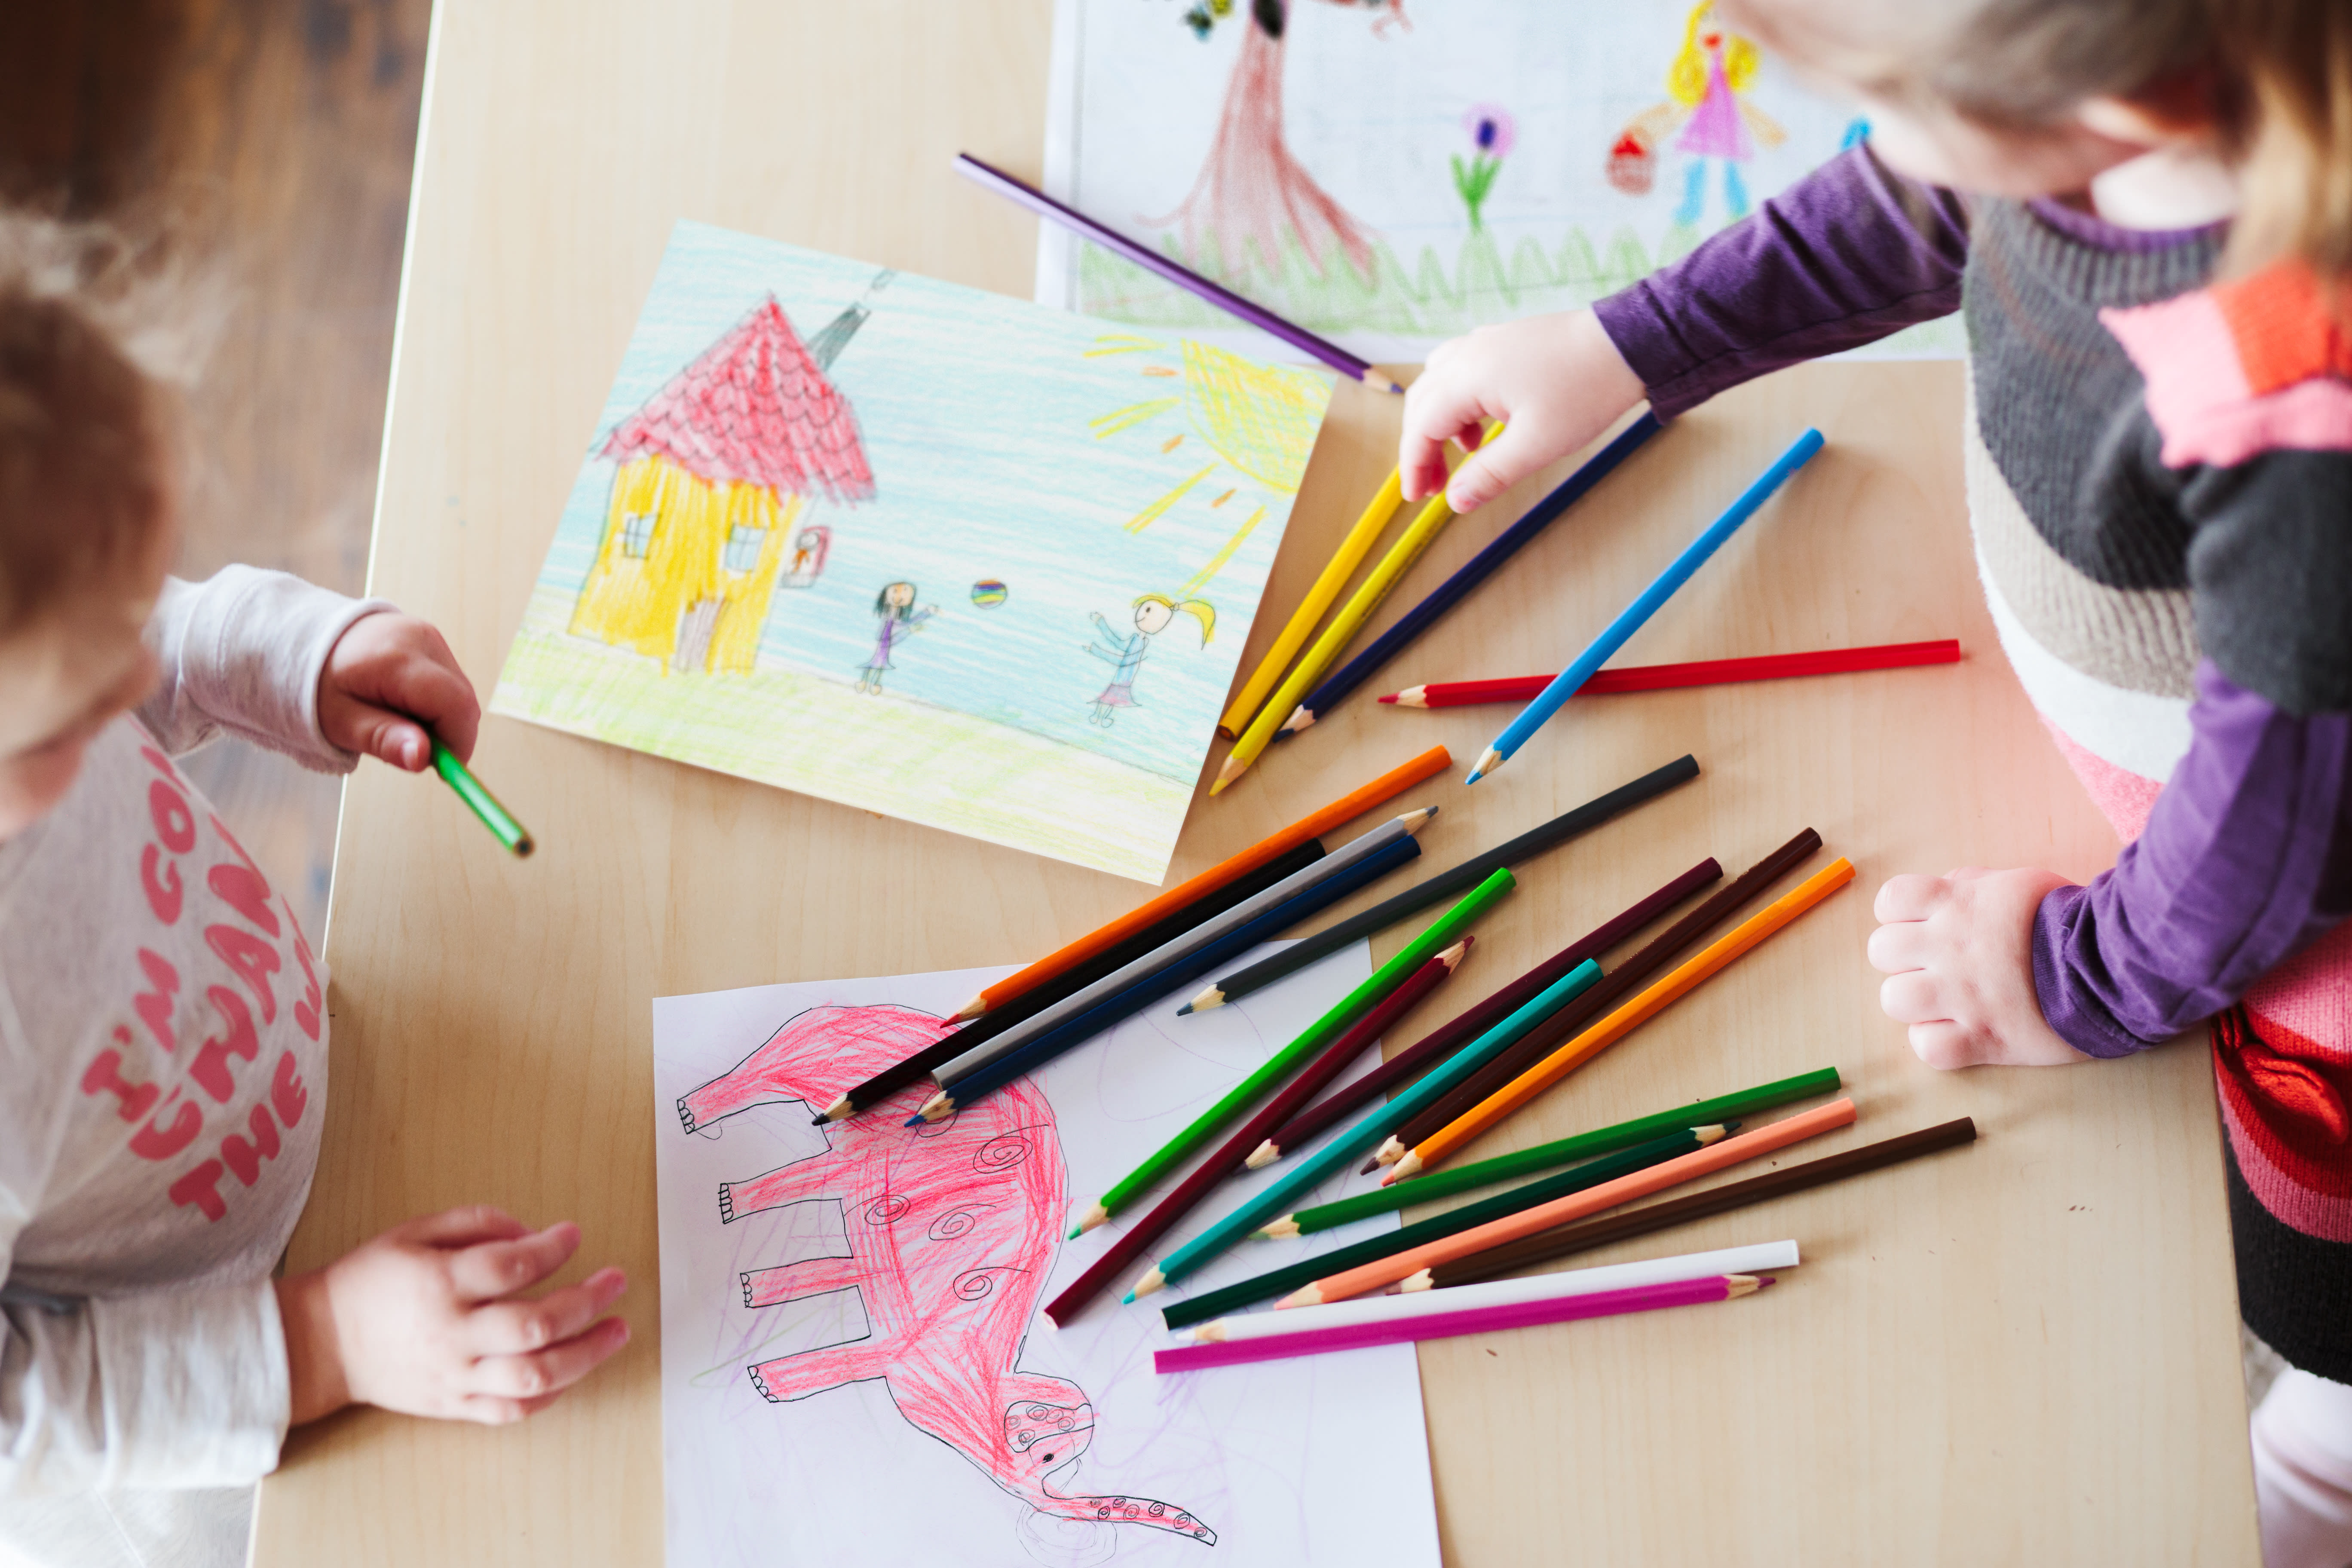 Stock your properties with basics that can keep your guests' little ones entertained